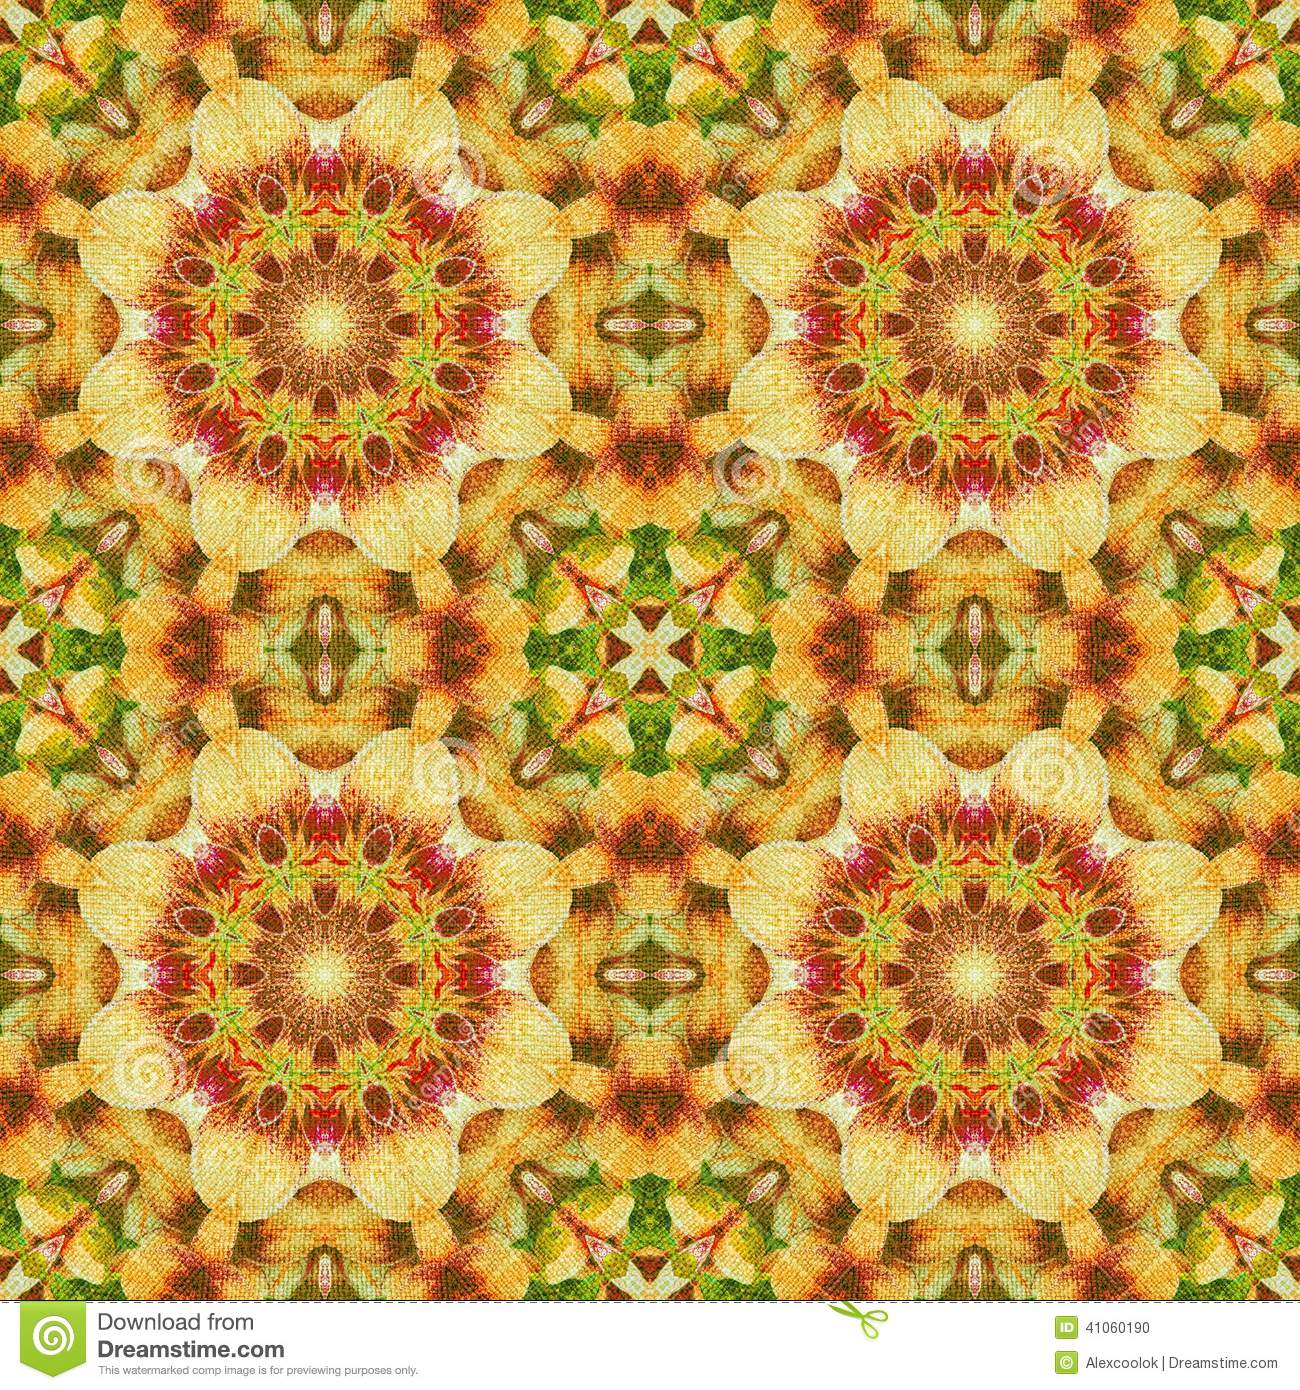 floral patterned canvas fabric - photo #45